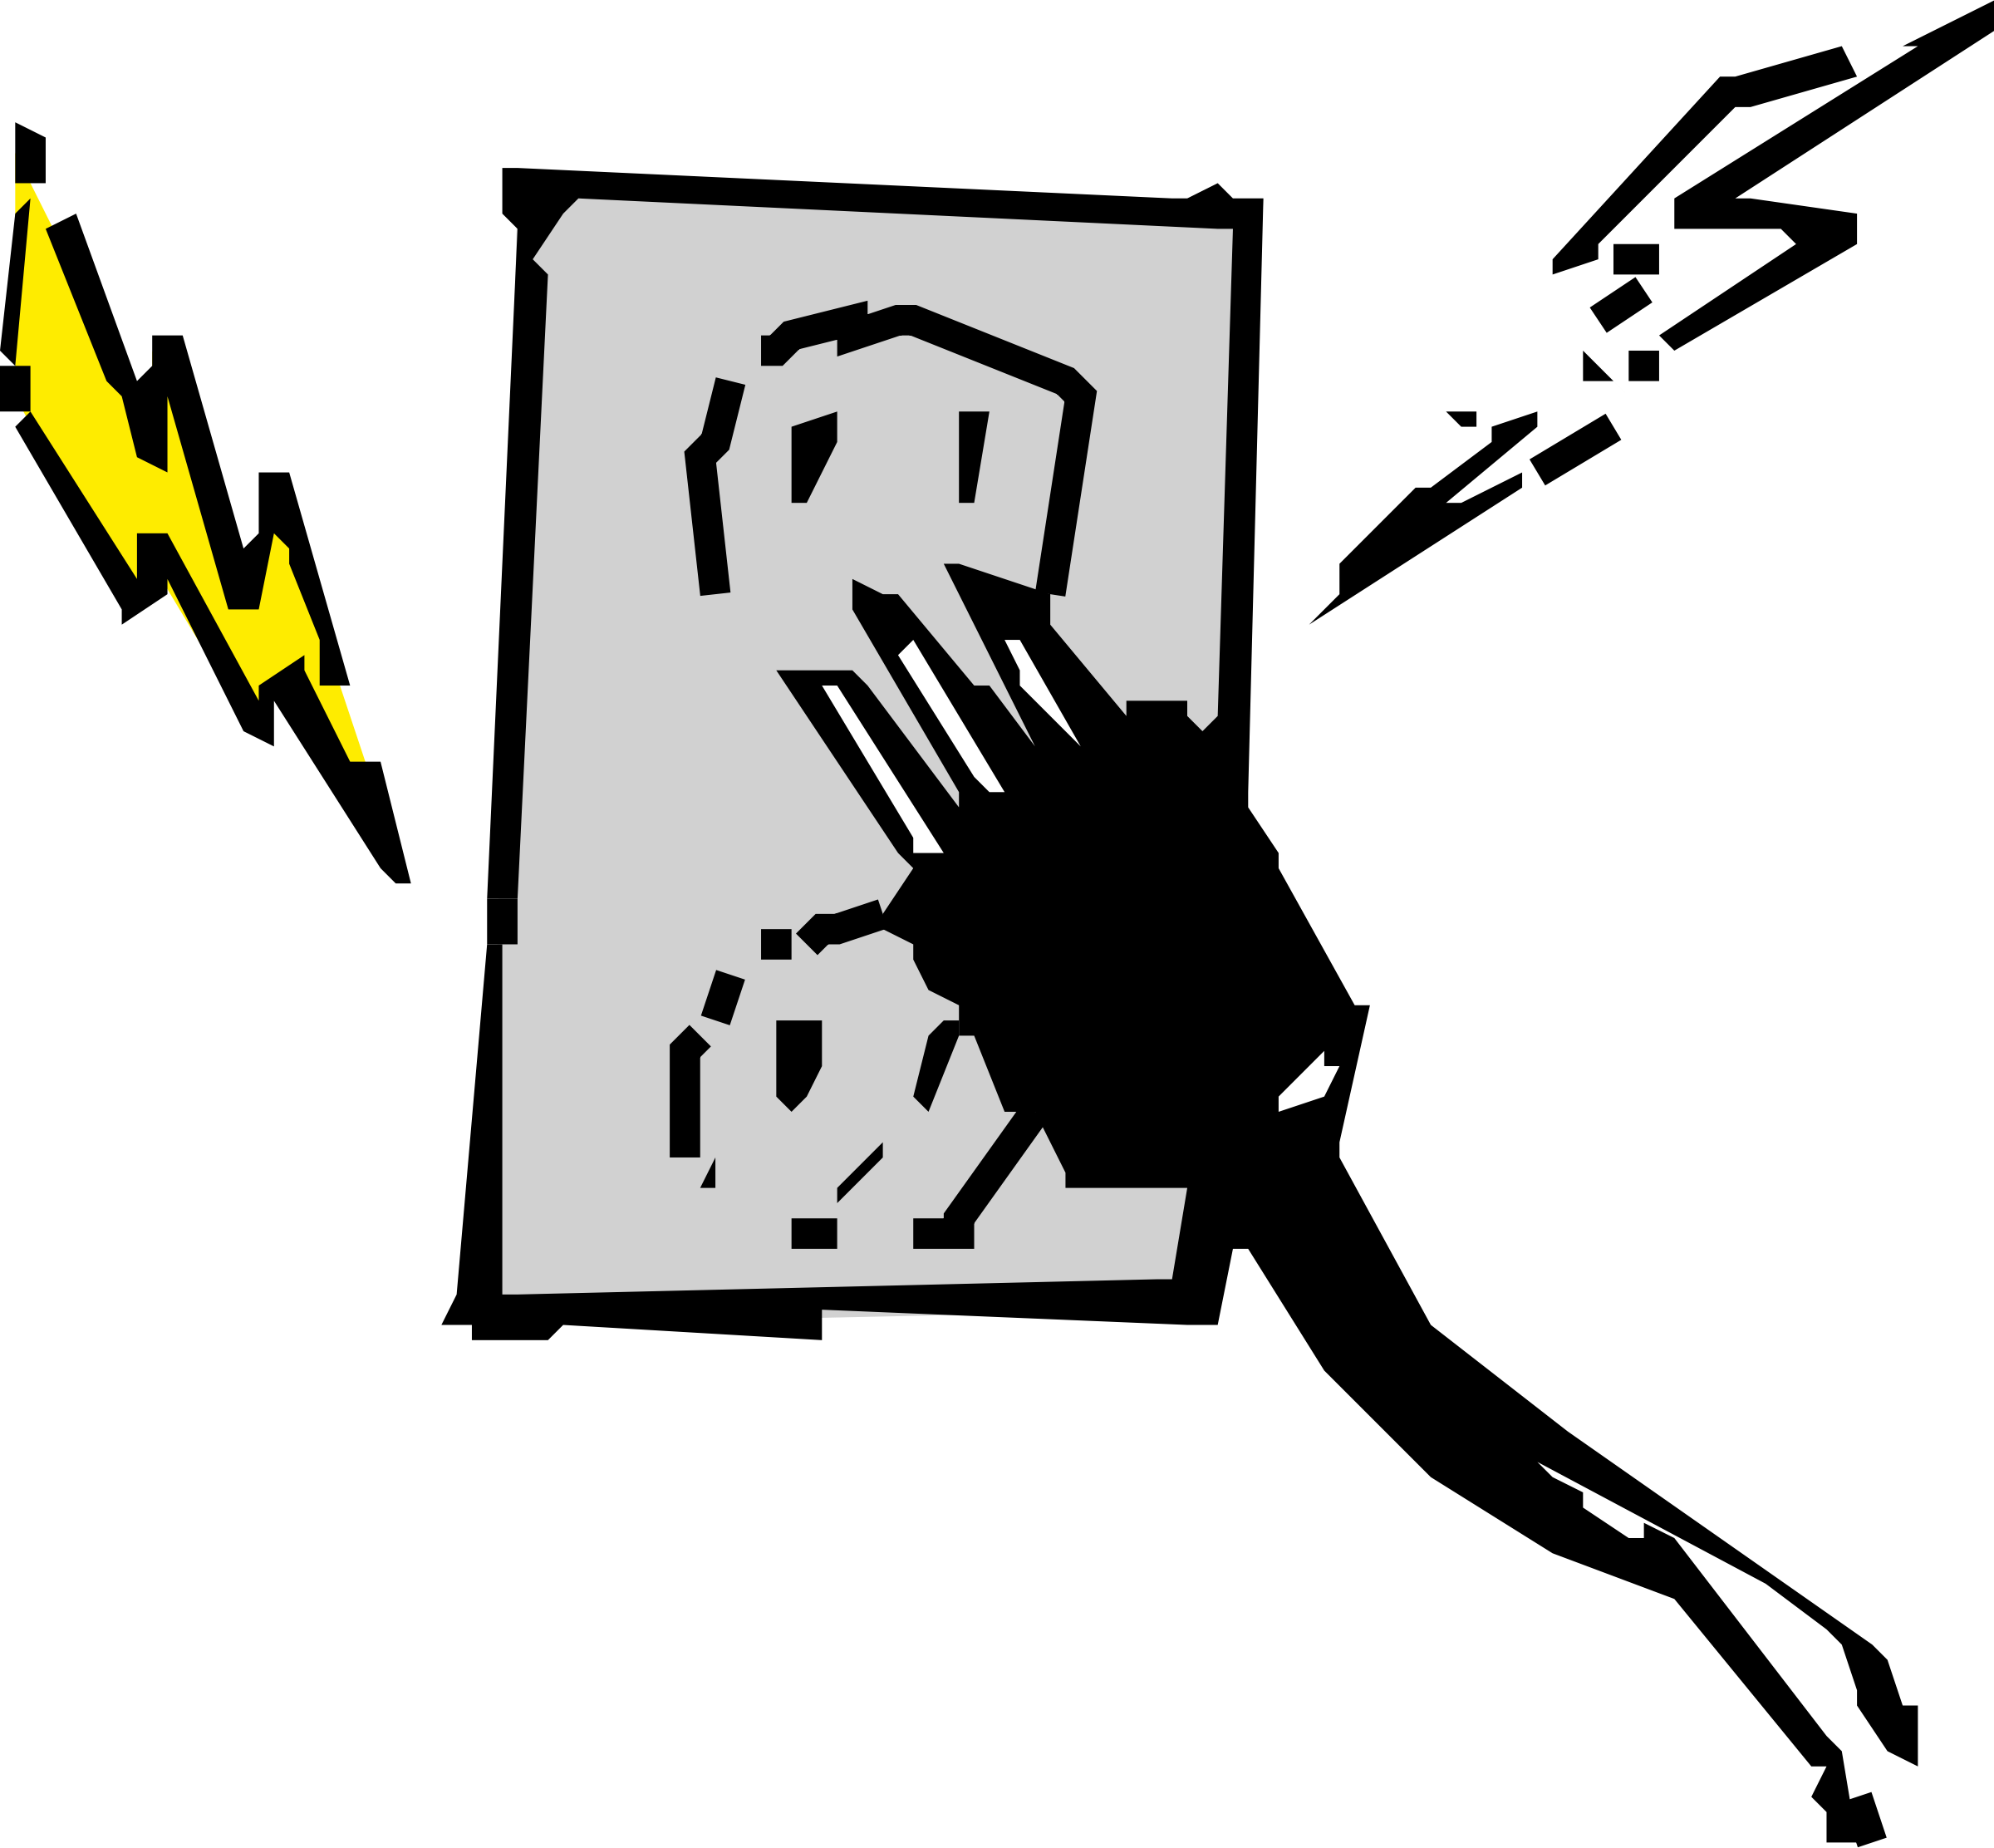 Electric clipart electricity. Electrical outlet and plug